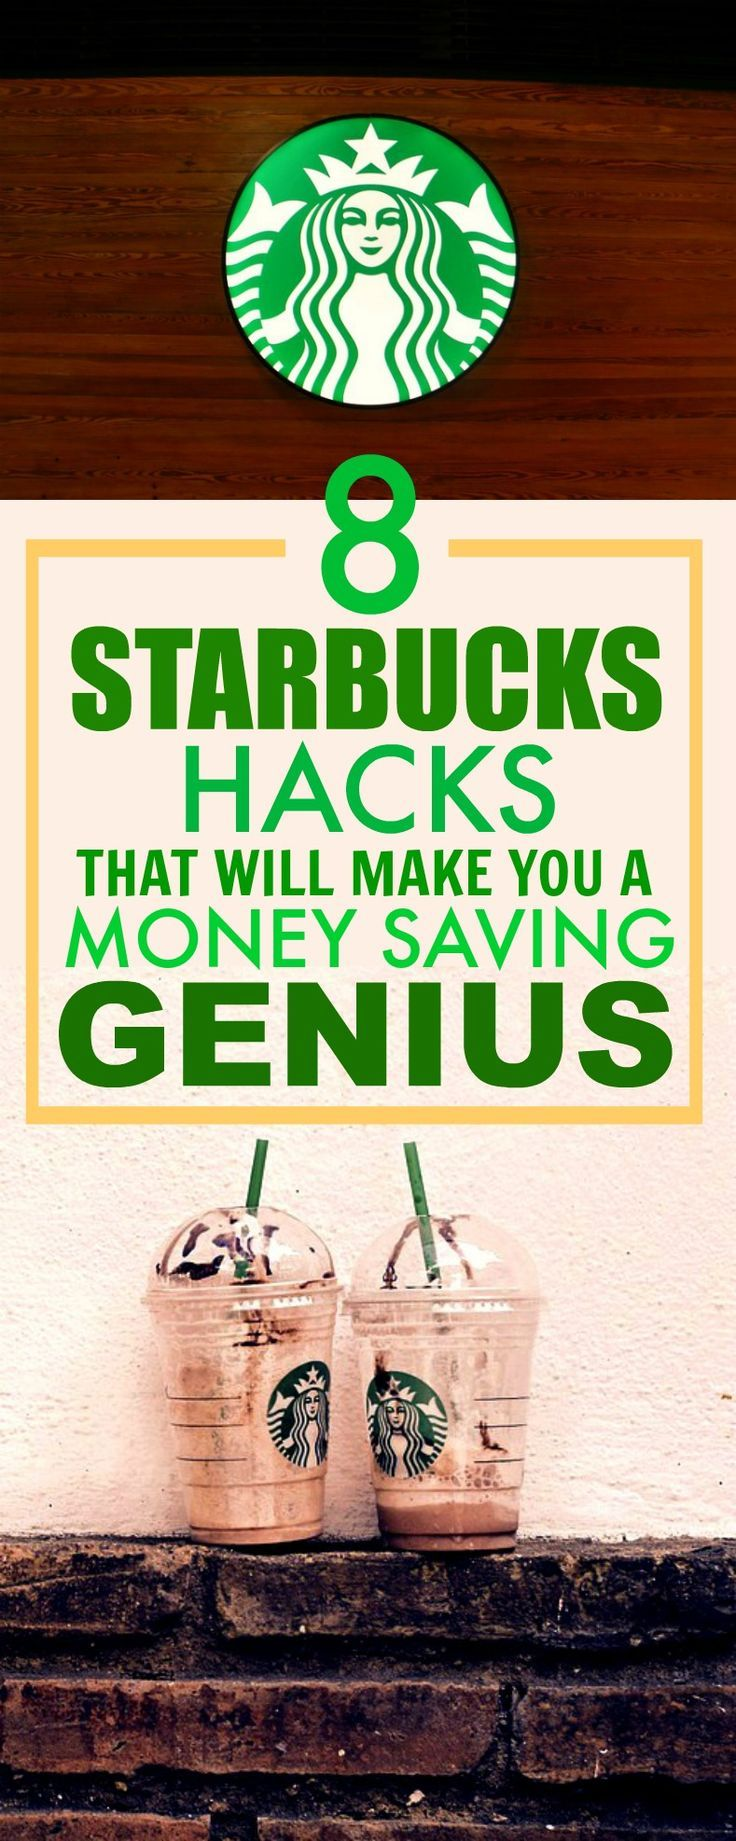 These 8 money saving hacks and tips for Starbucks are THE BEST! I've already tried 2 and 3 and I've saved some money. This is such a GREAT post! So happy I found this!